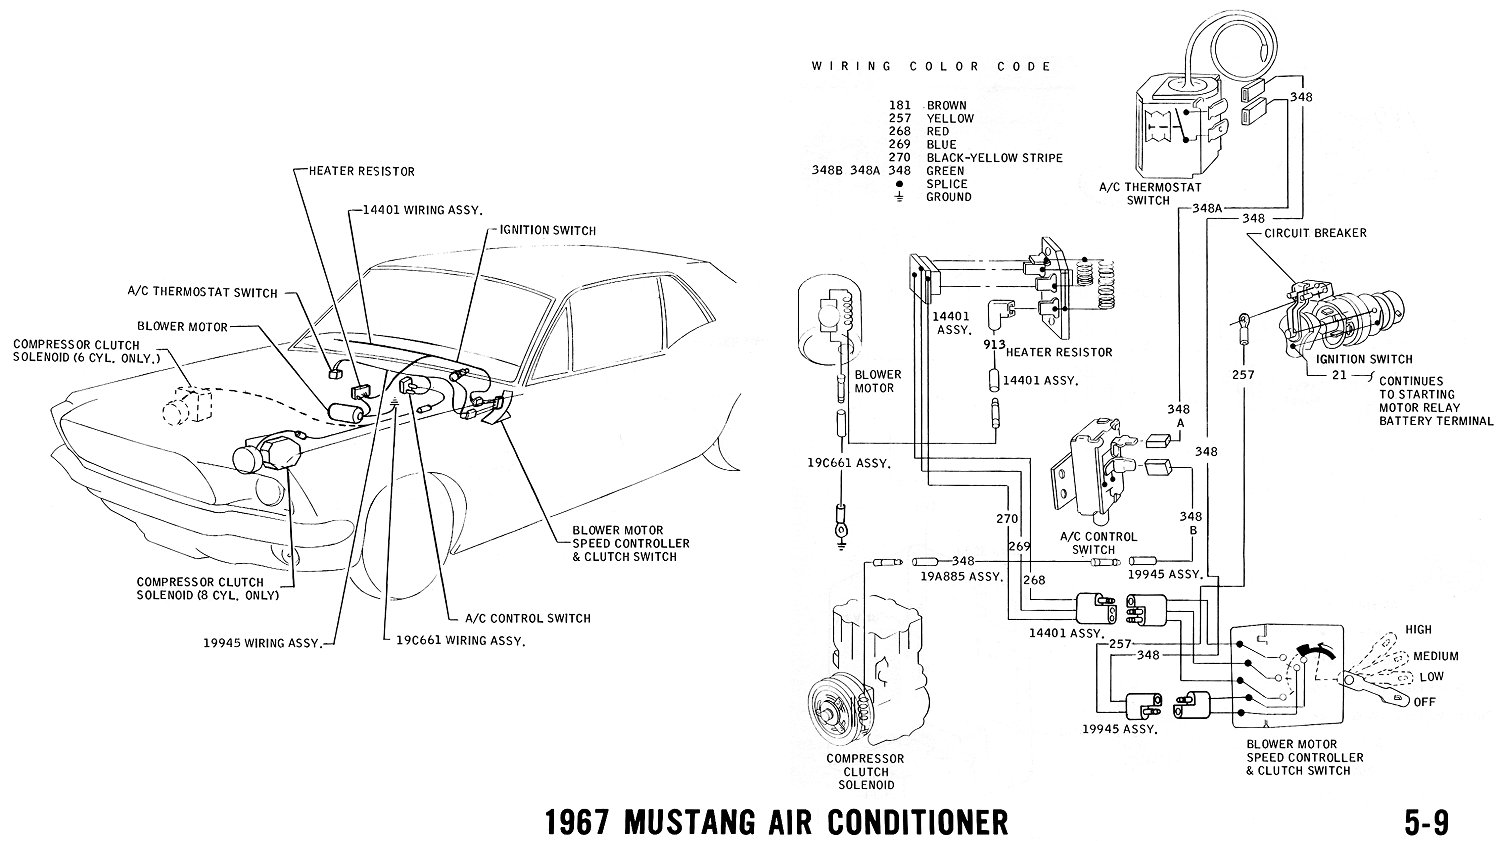 1967 mustang air conditioner  pictorial and schematic